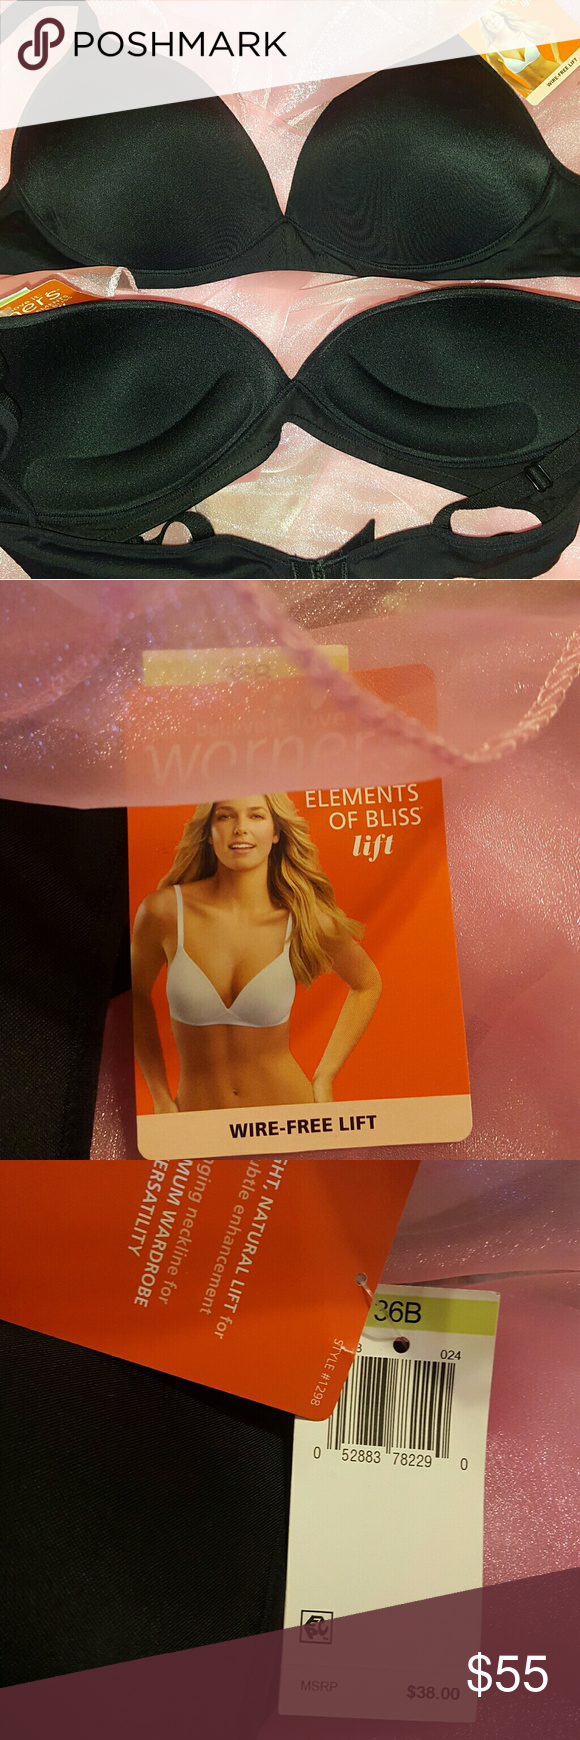 Brand New Lot Of 2 Warners Bras From Macy*s Please see pix to see exactly the type of bra lot you*ll be getting from me. See Tags. #MacysBras #WireFreeLift #BlackBras Warners Intimates & Sleepwear Bras